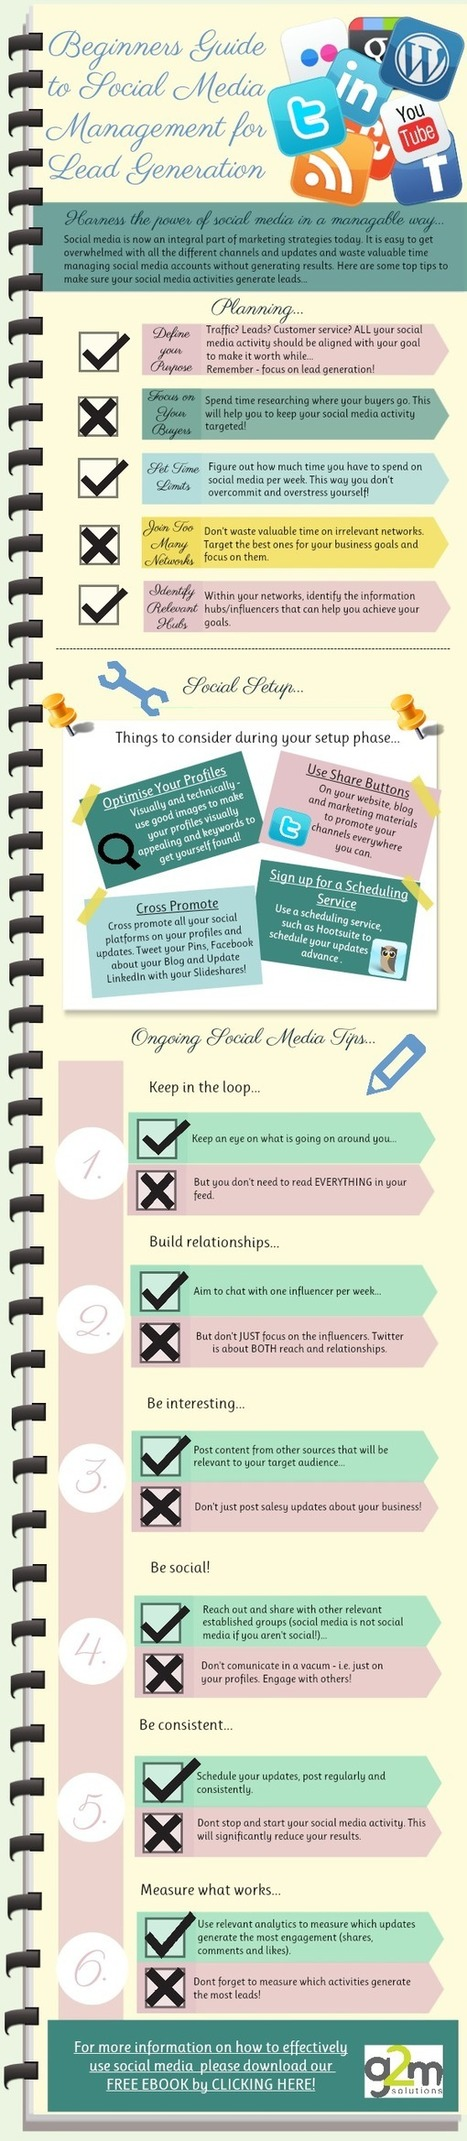 Social Media Marketing For B2B Lead Generation (Infographic) | Membercare | Scoop.it